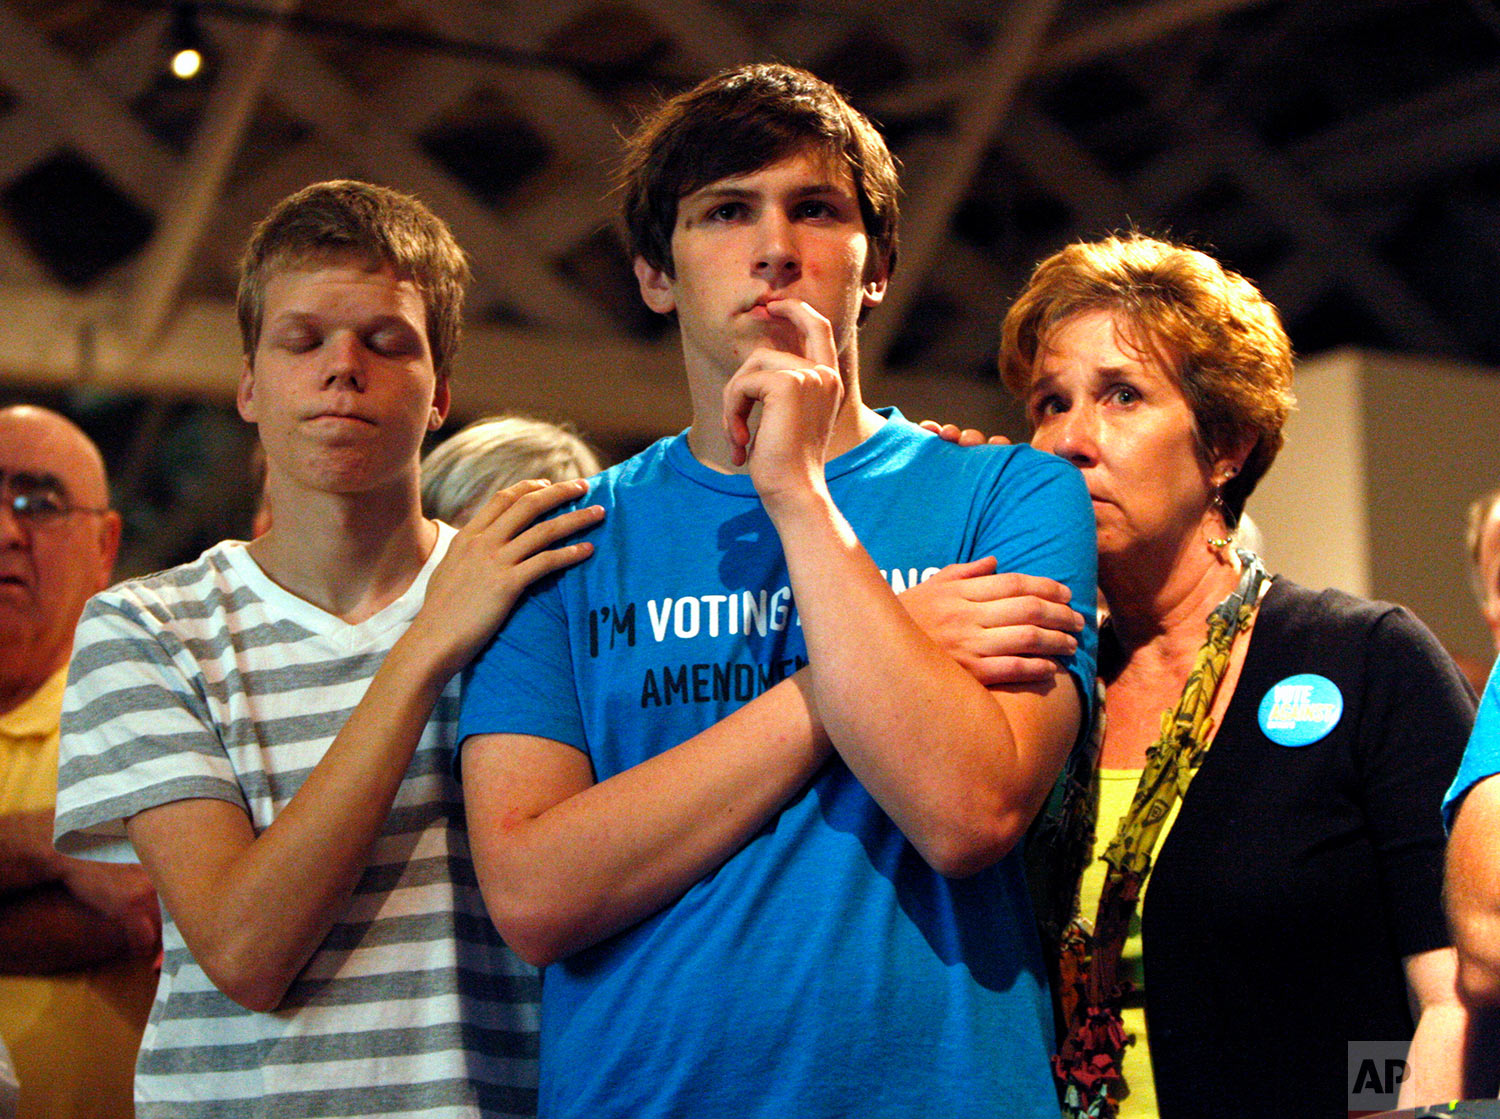 In this Tuesday, May 8, 2012 file photo, Seth Keel, center, is consoled by his boyfriend, Ian Chambers, left, and his mother Jill Hinton, during a concession speech at an Amendment One opposition party in downtown Raleigh, N.C. North Carolina voters approved the constitutional amendment Tuesday defining marriage solely as a union between a man and a woman, becoming the latest state to effectively stop same-sex marriages. (Travis Long/The News & Observer via AP)